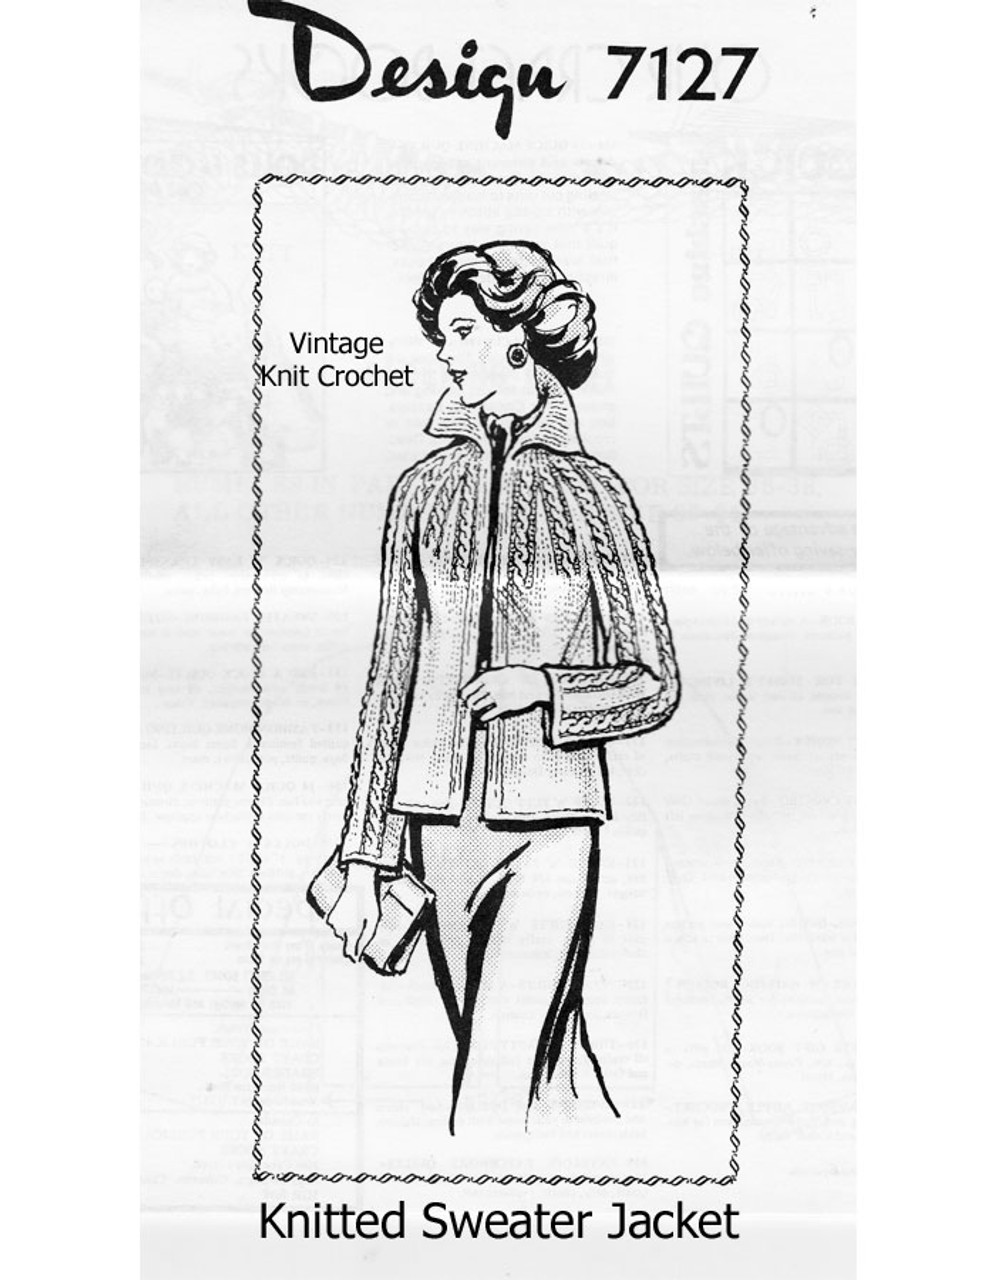 Cable Jacket Knitting Pattern, Mail Order Design 7127